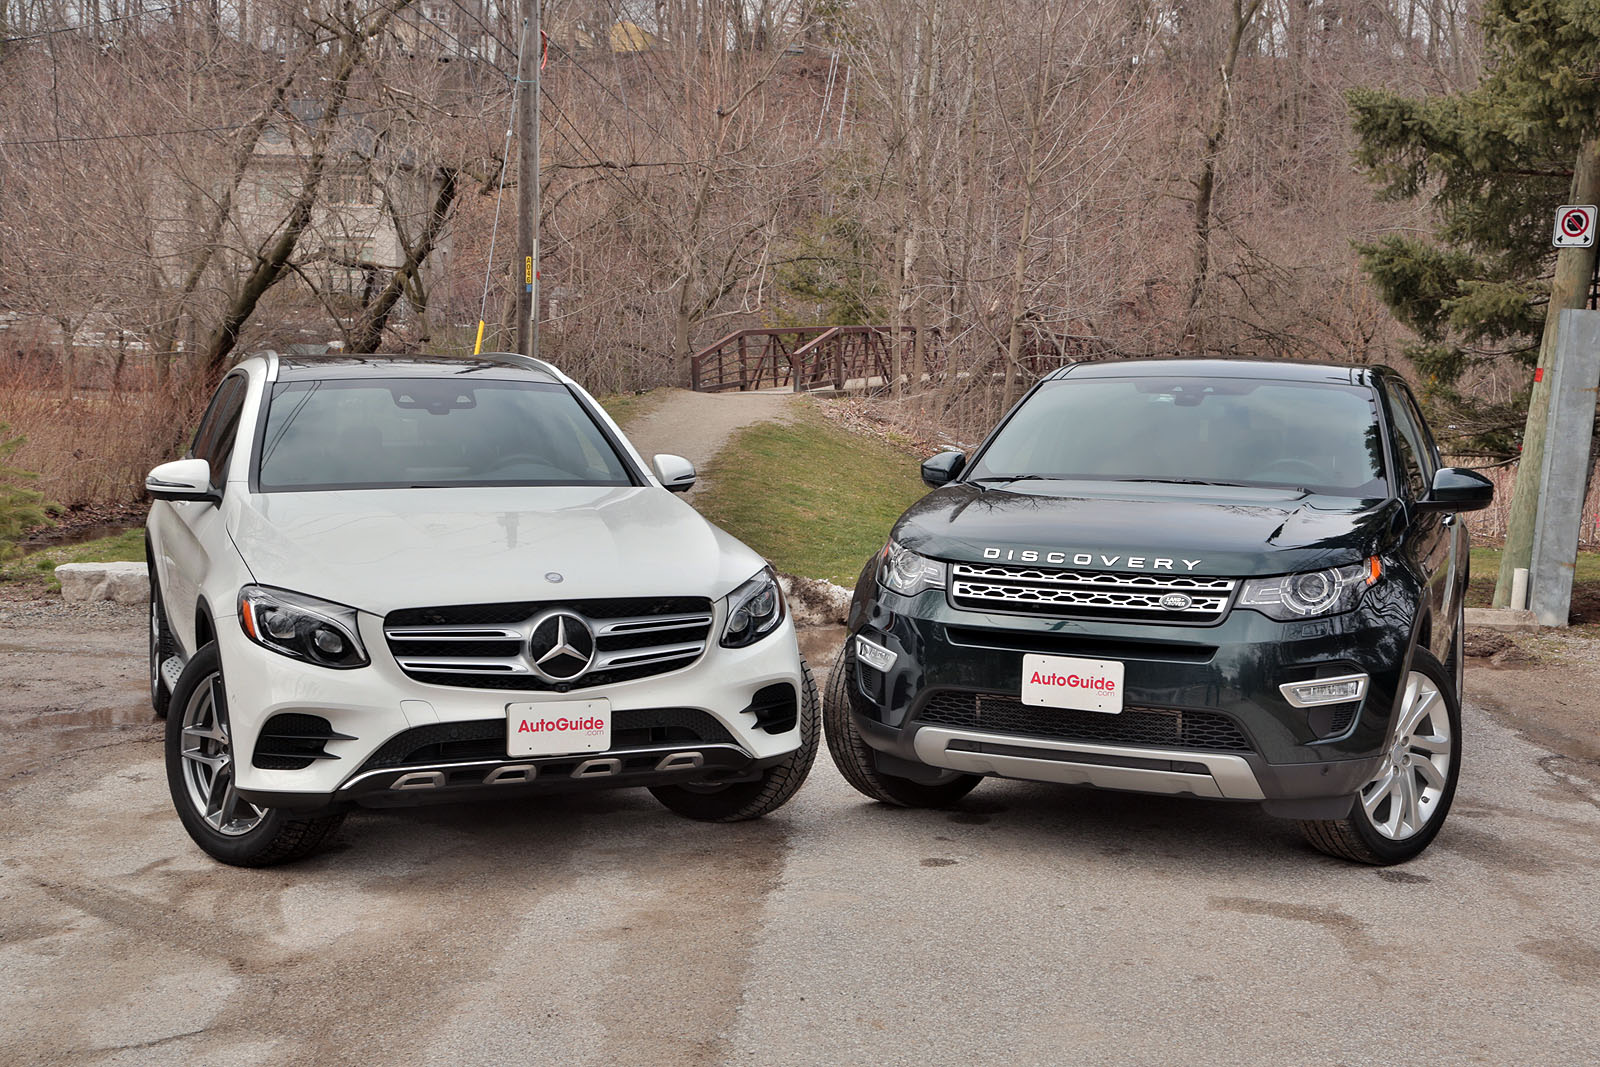 Land rover discovery sport vs mercedes benz glc 300 for Mercedes benz range rover price